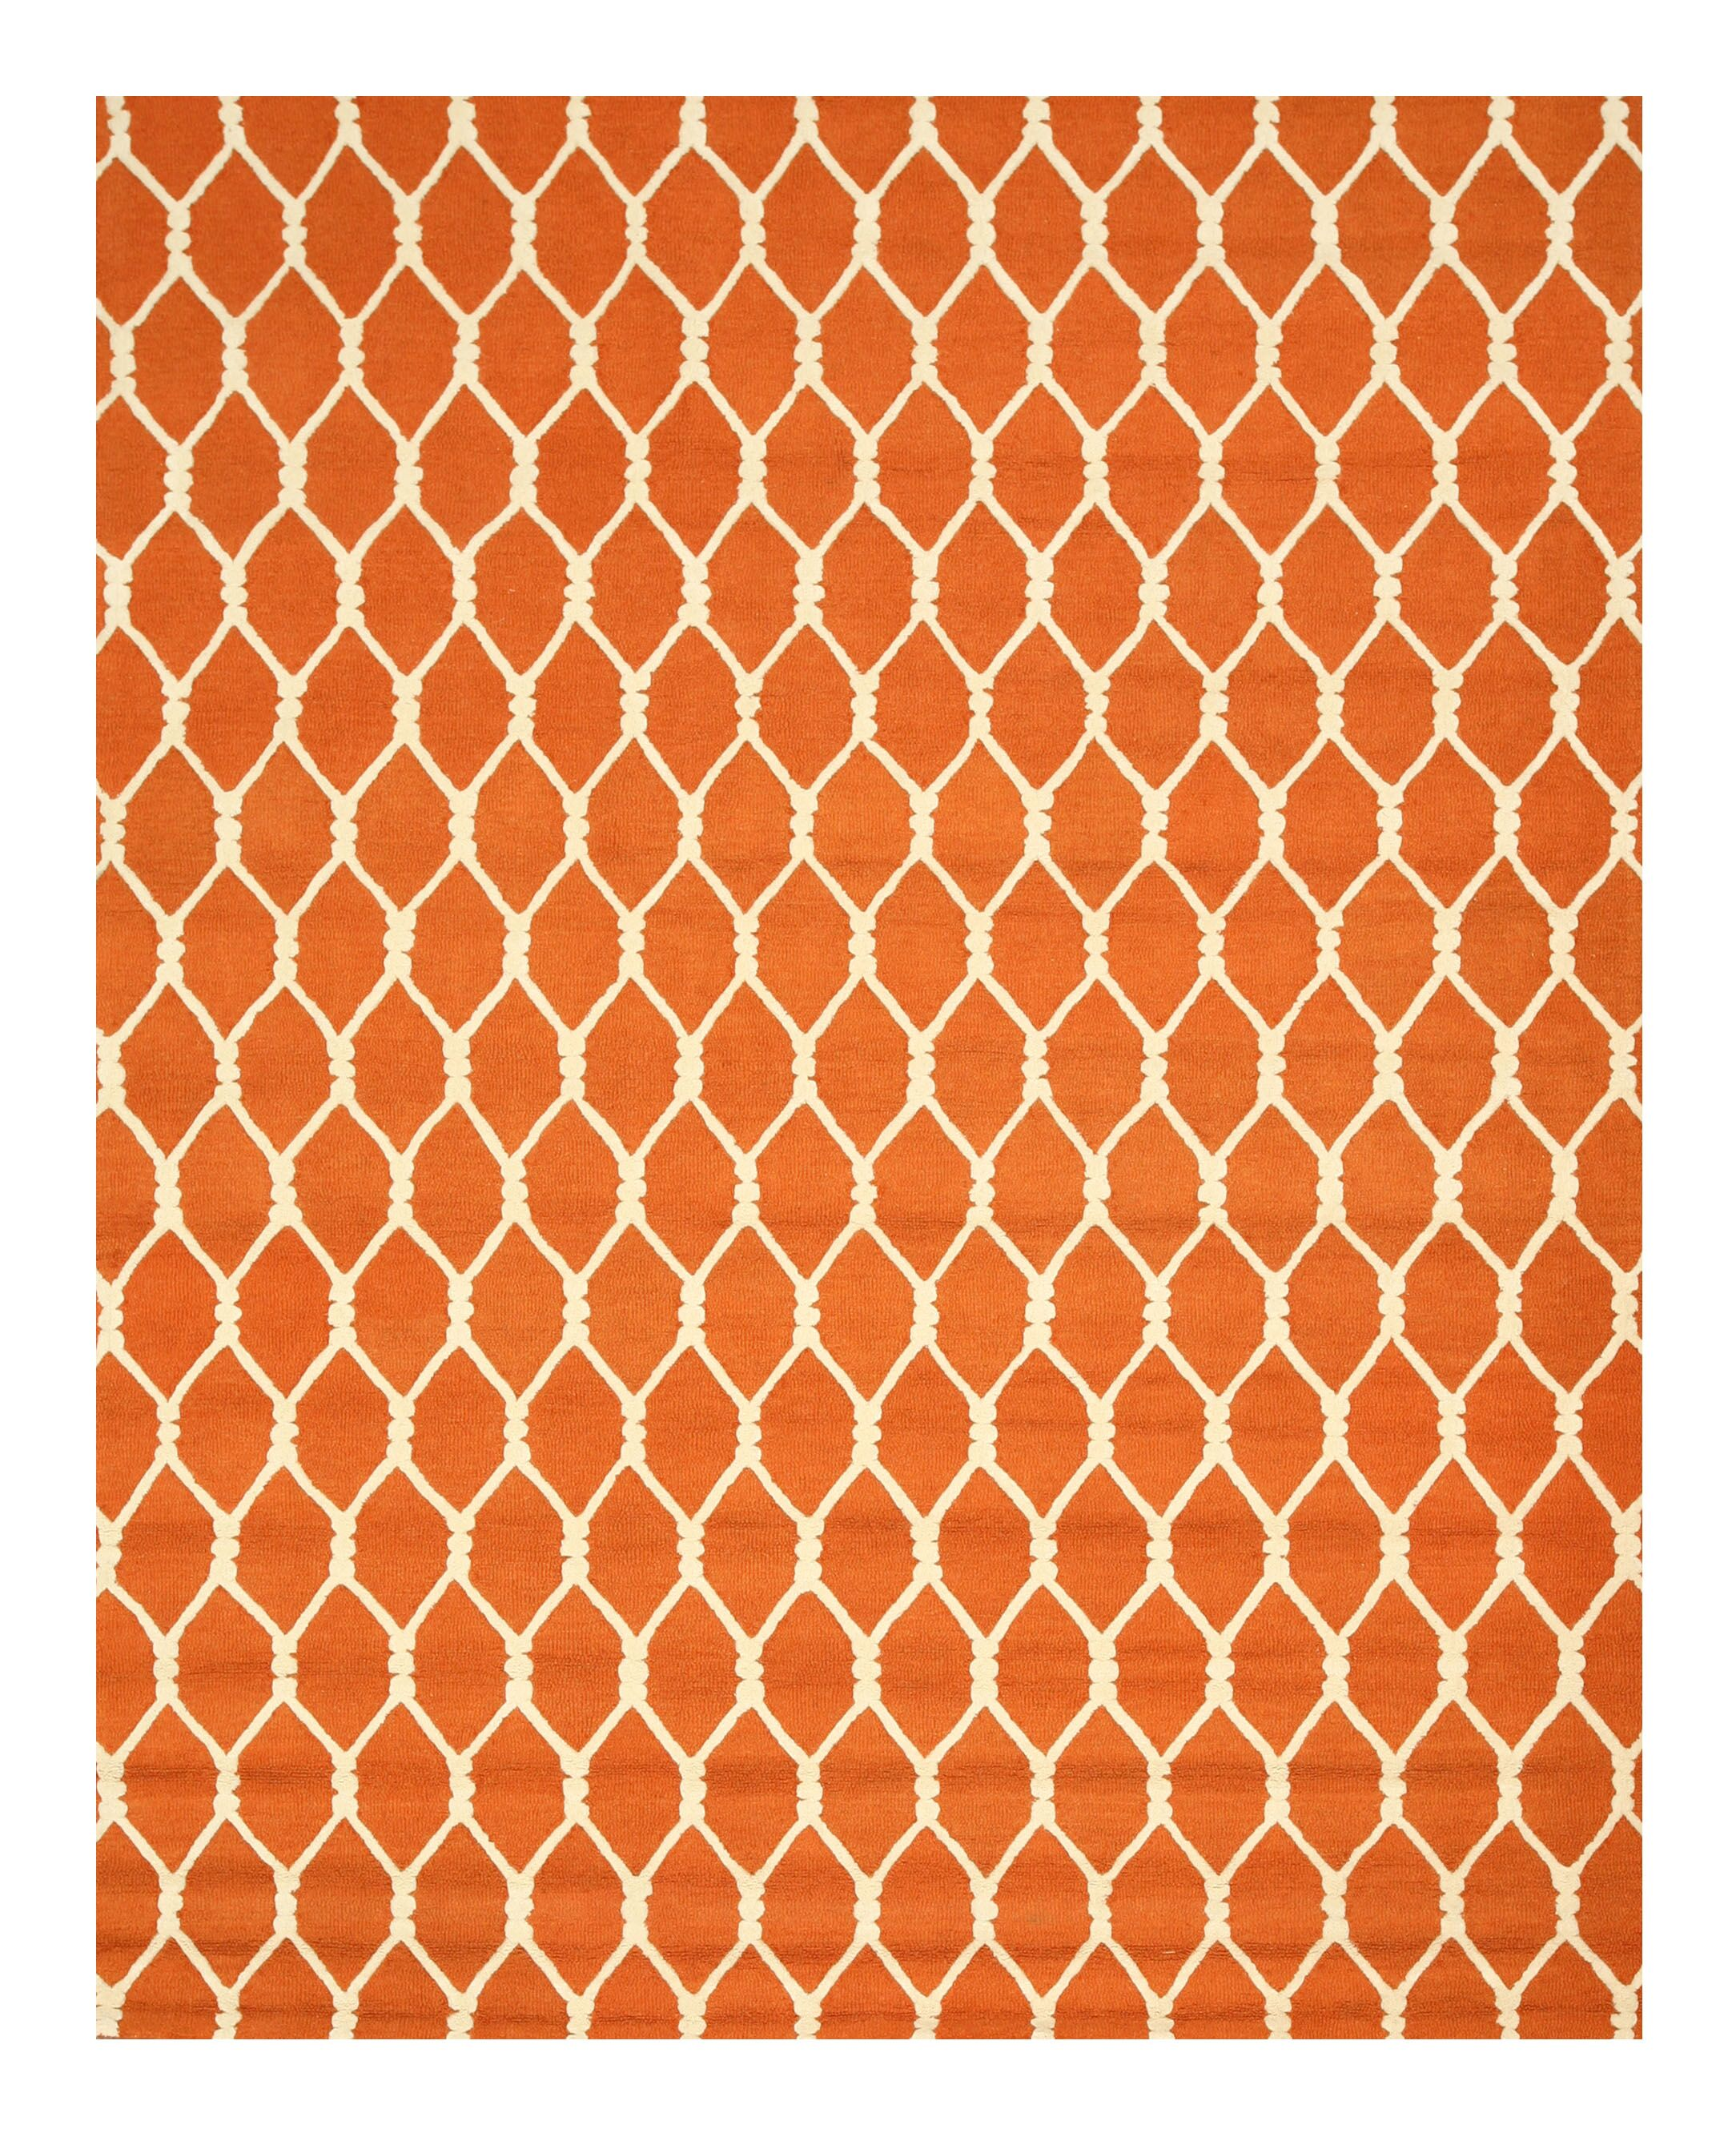 Hand-Tufted Orange Area Rug Rug Size: Rectangle 7'9